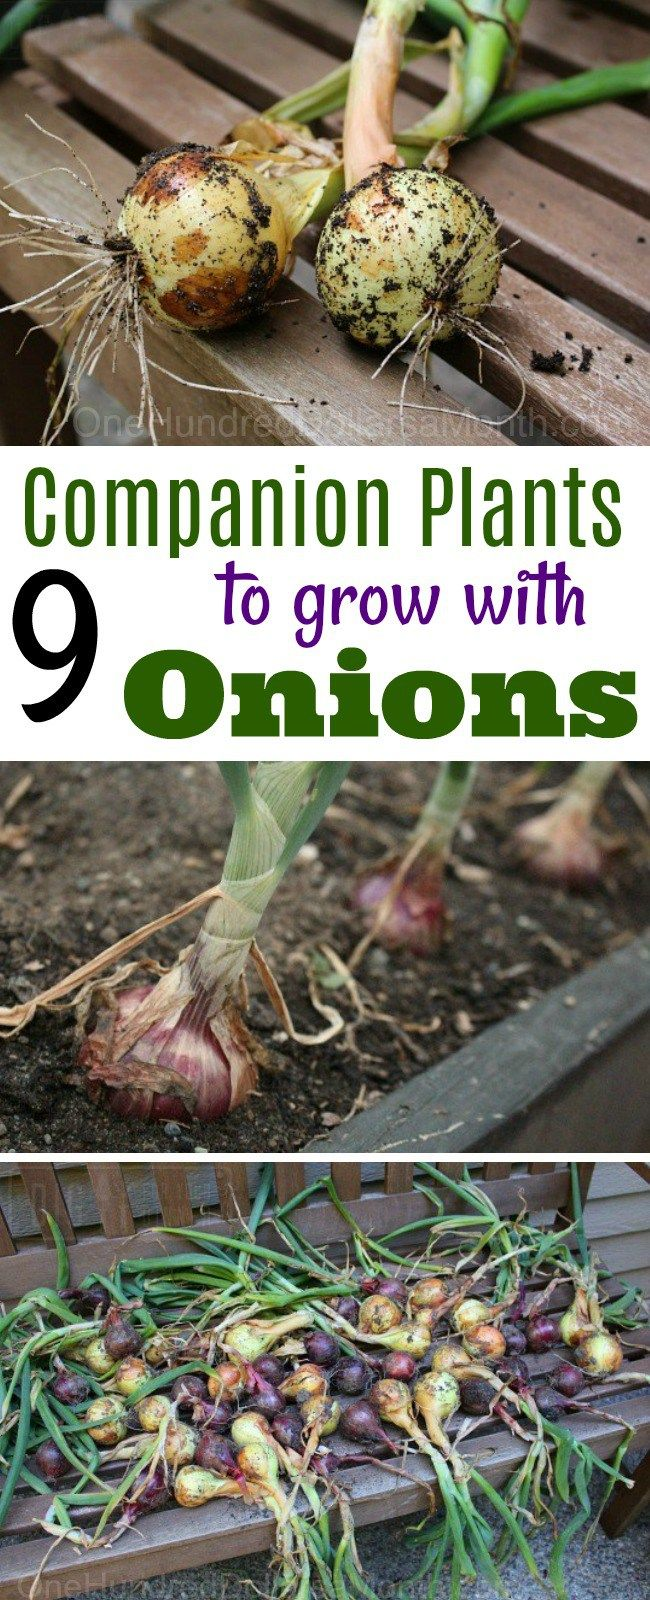 Interior designs medium size vertically growing onions growing onions - 7 Companion Plants To Grow With Onions